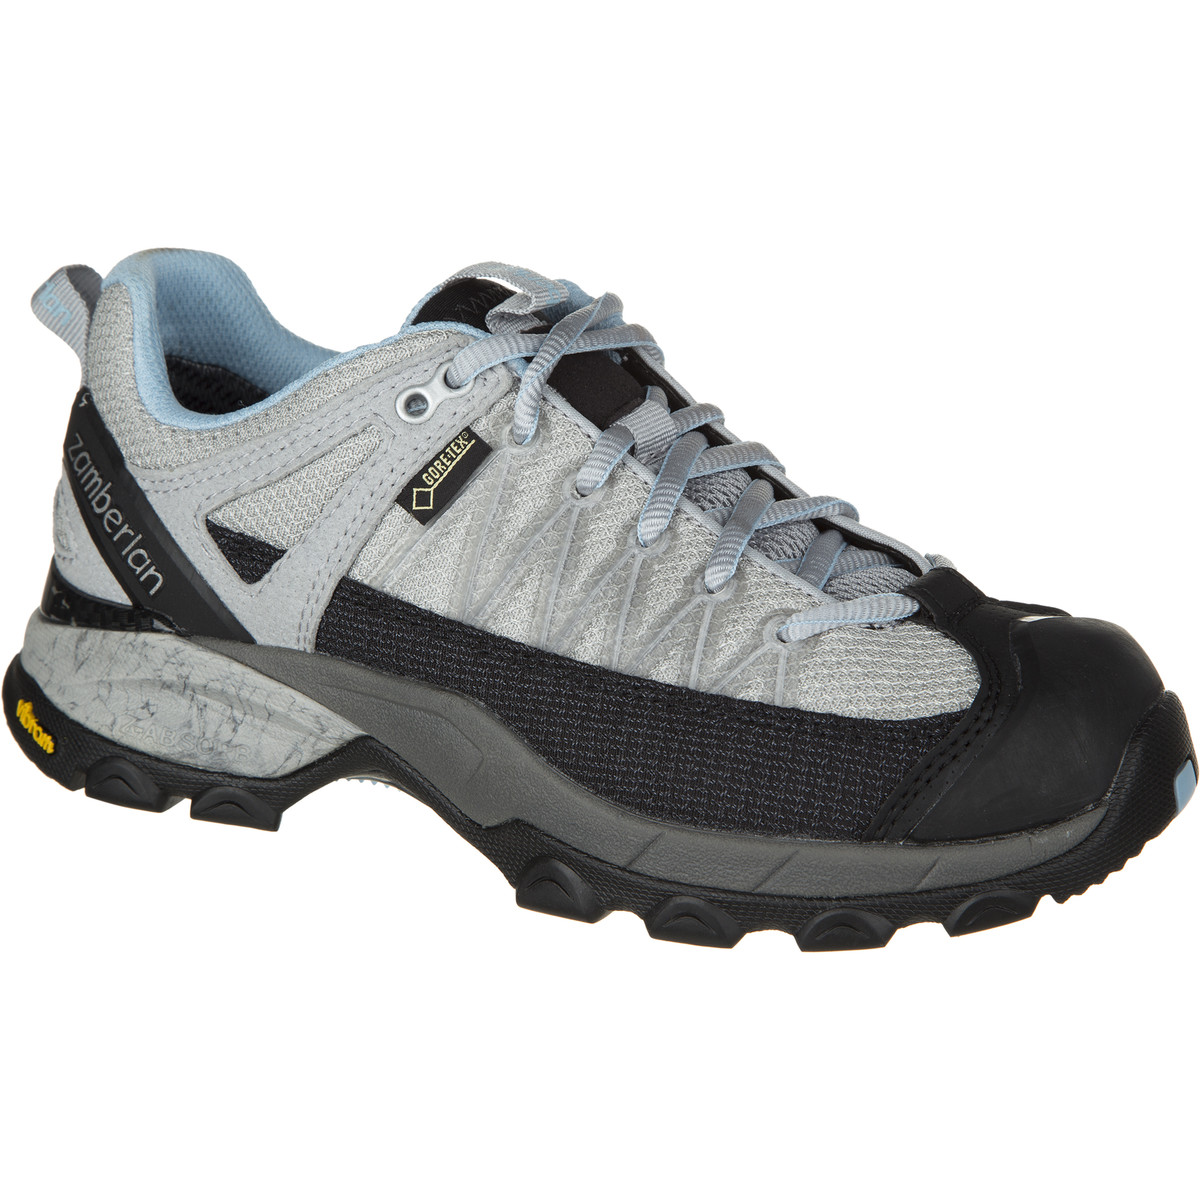 photo: Zamberlan Women's 130 SH Crosser GTX RR trail shoe